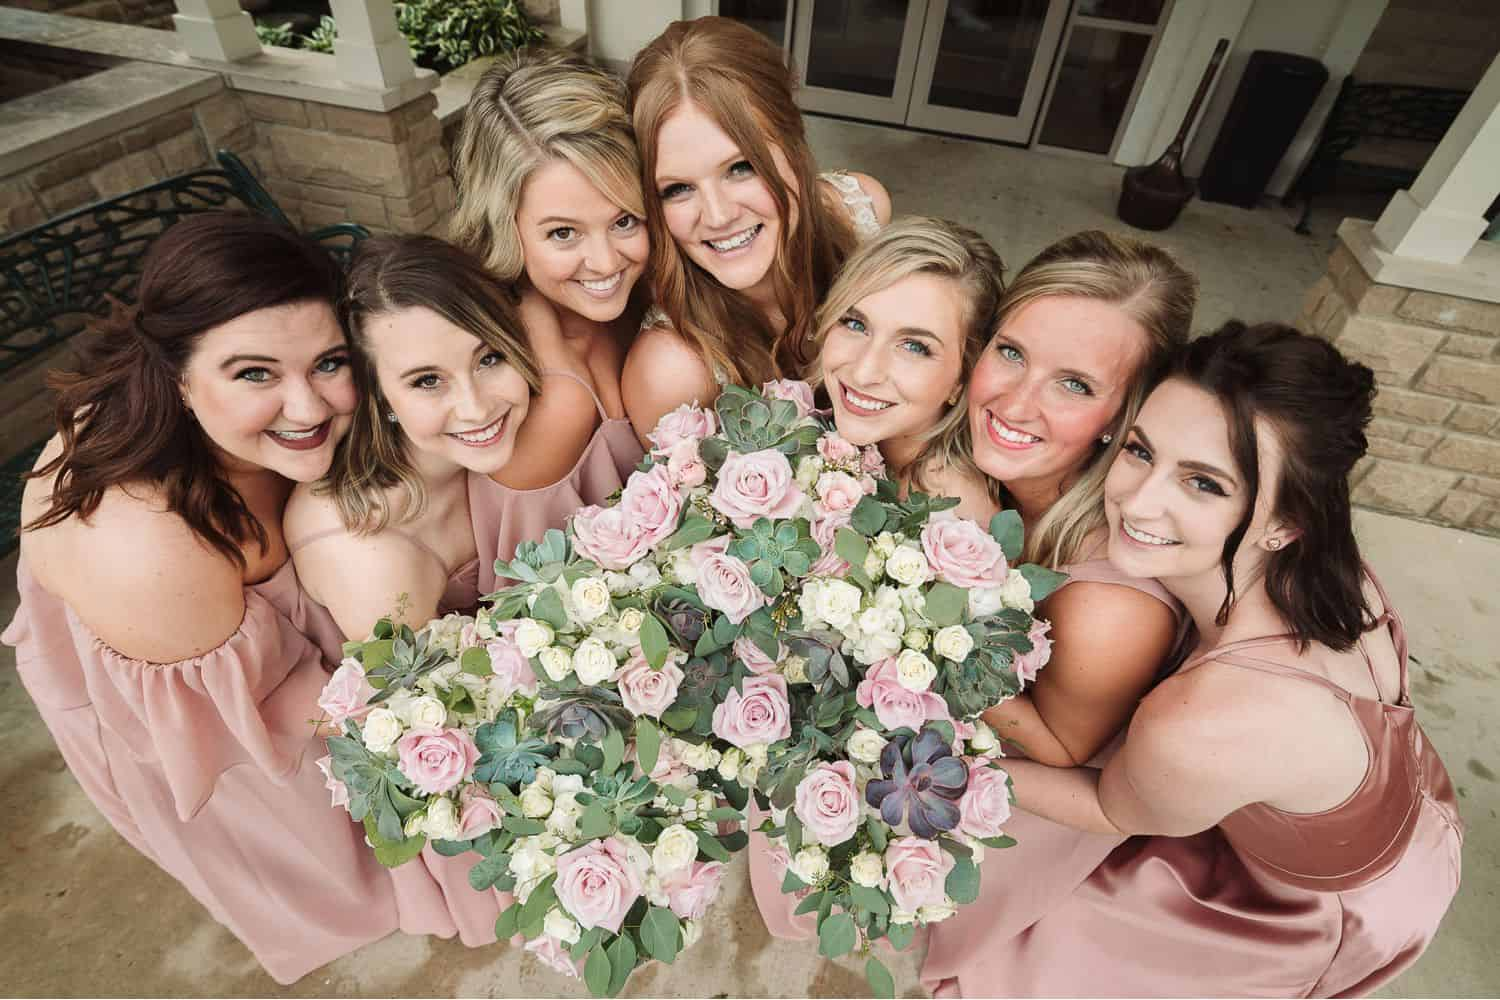 Bridesmaids in pink dresses surround a collection of pastel bouquets.